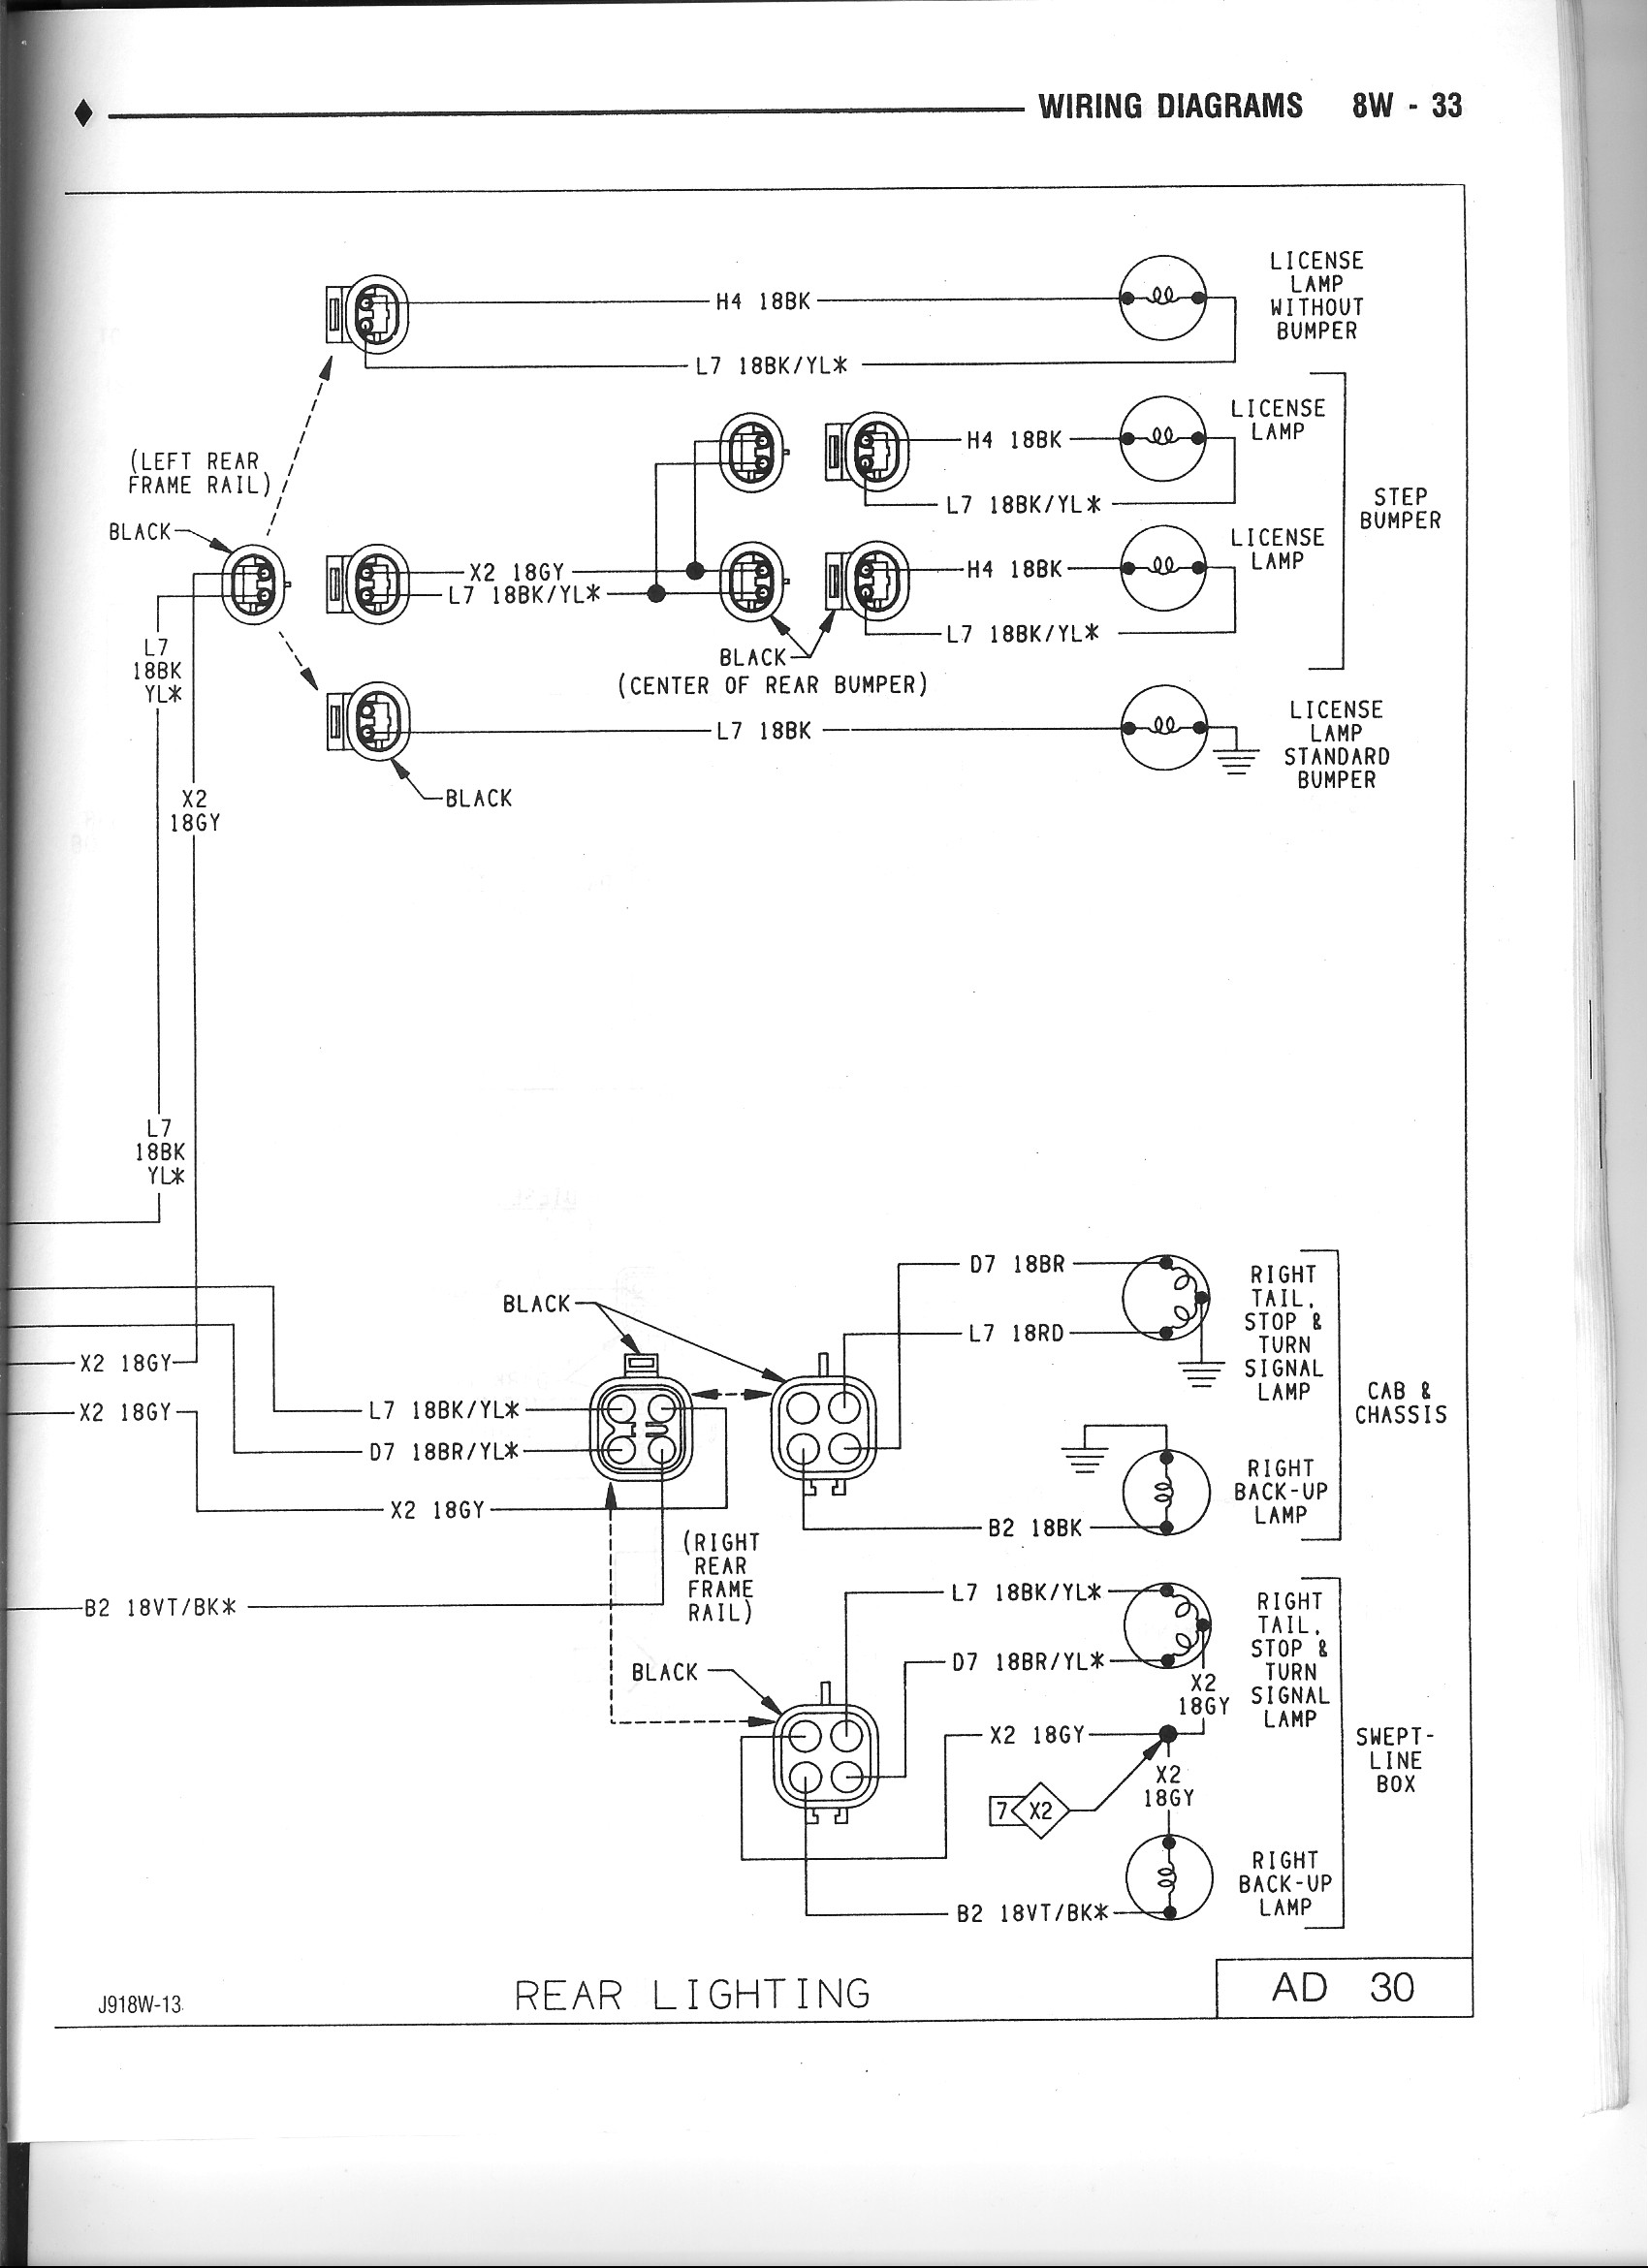 Pleasing 92 Dodge B350 Wiring Diagram Wiring Library Wiring Cloud Loplapiotaidewilluminateatxorg